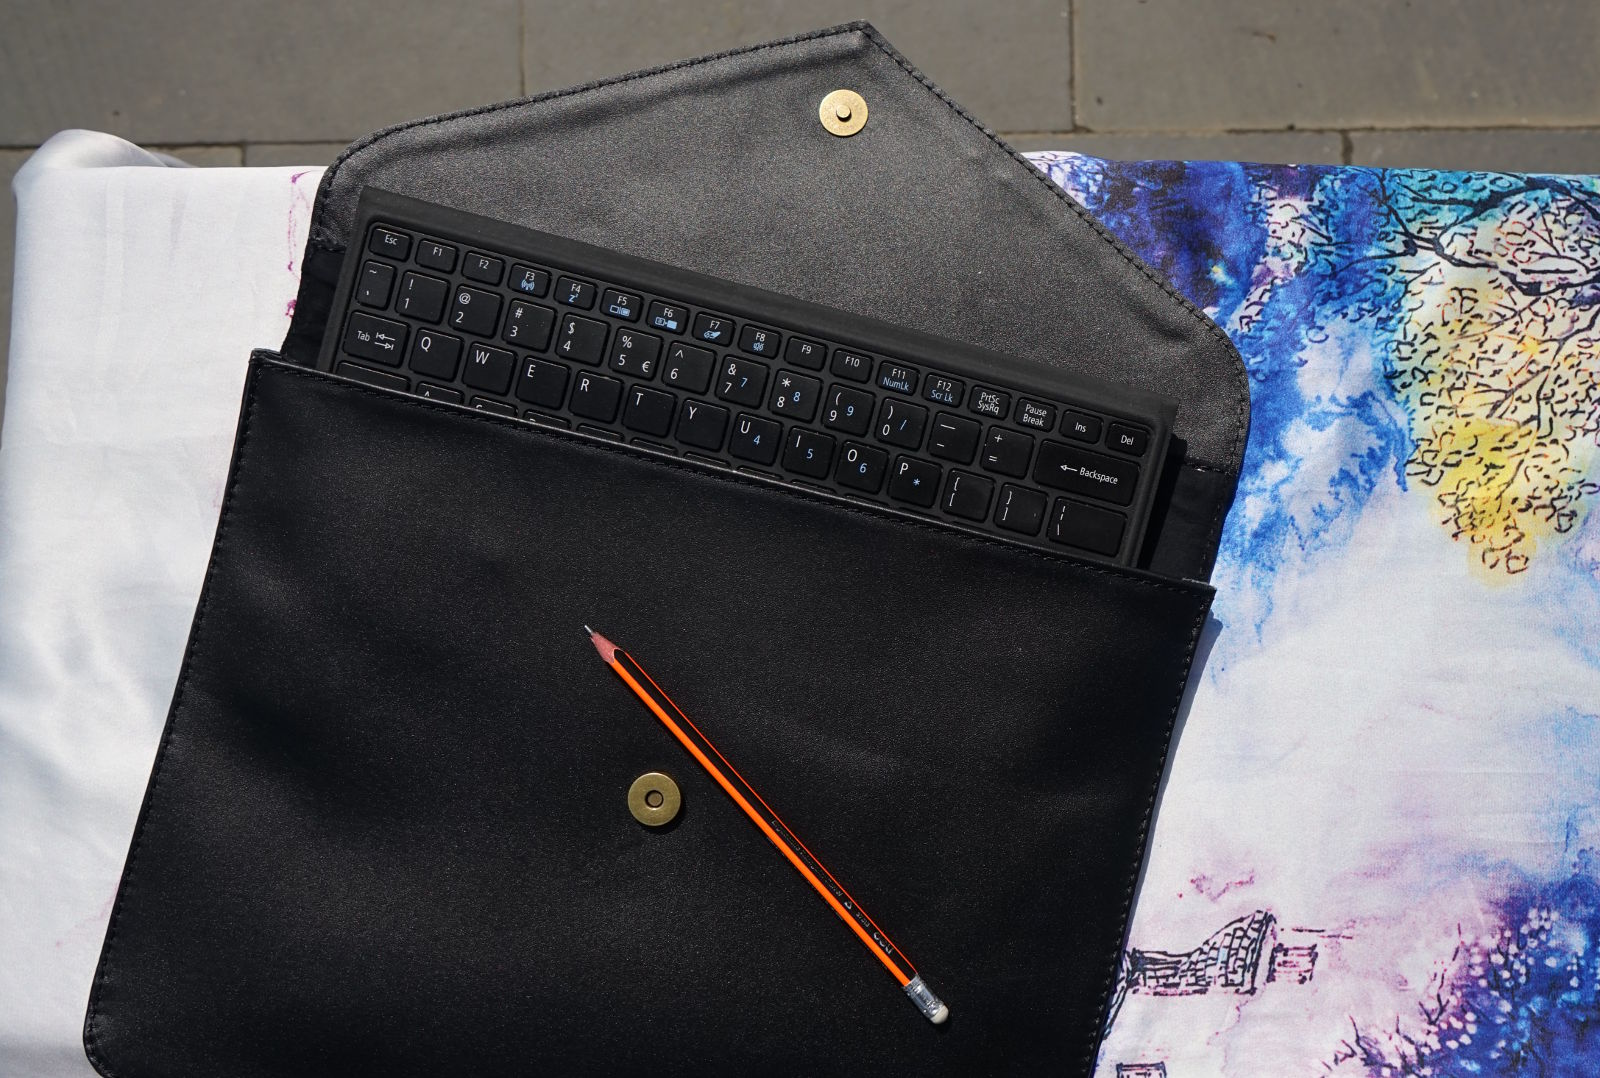 Hoi An Real Leather - Da Bao Real Leather: Leather laptop sleeve with single magnet button. Soft and shiny cow leather..